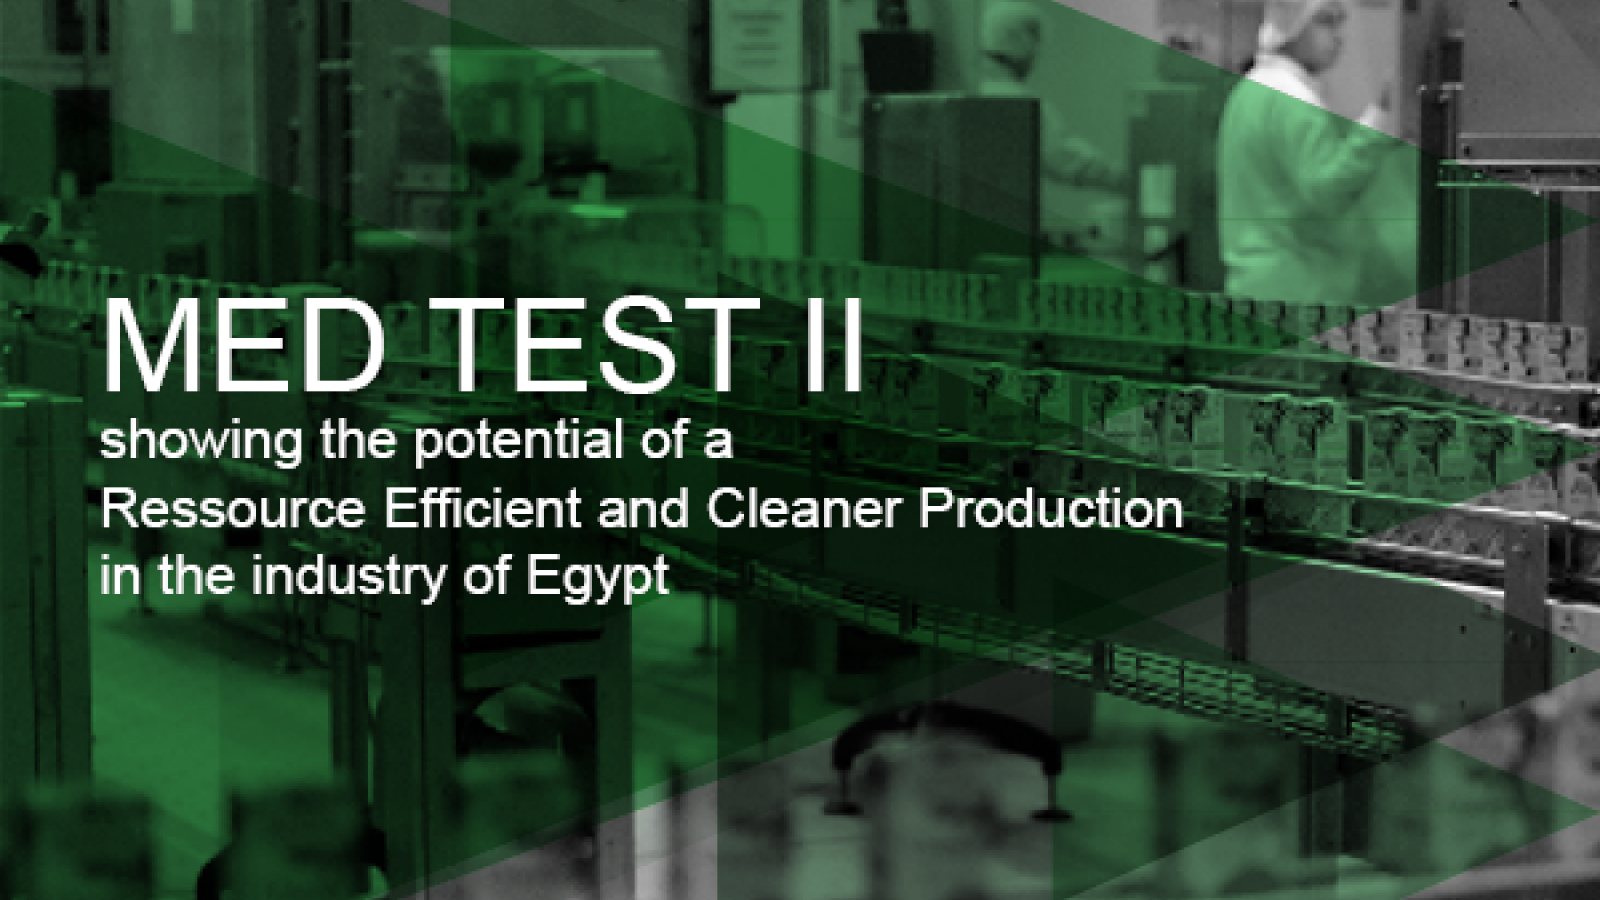 The UNIDO MED TEST II project